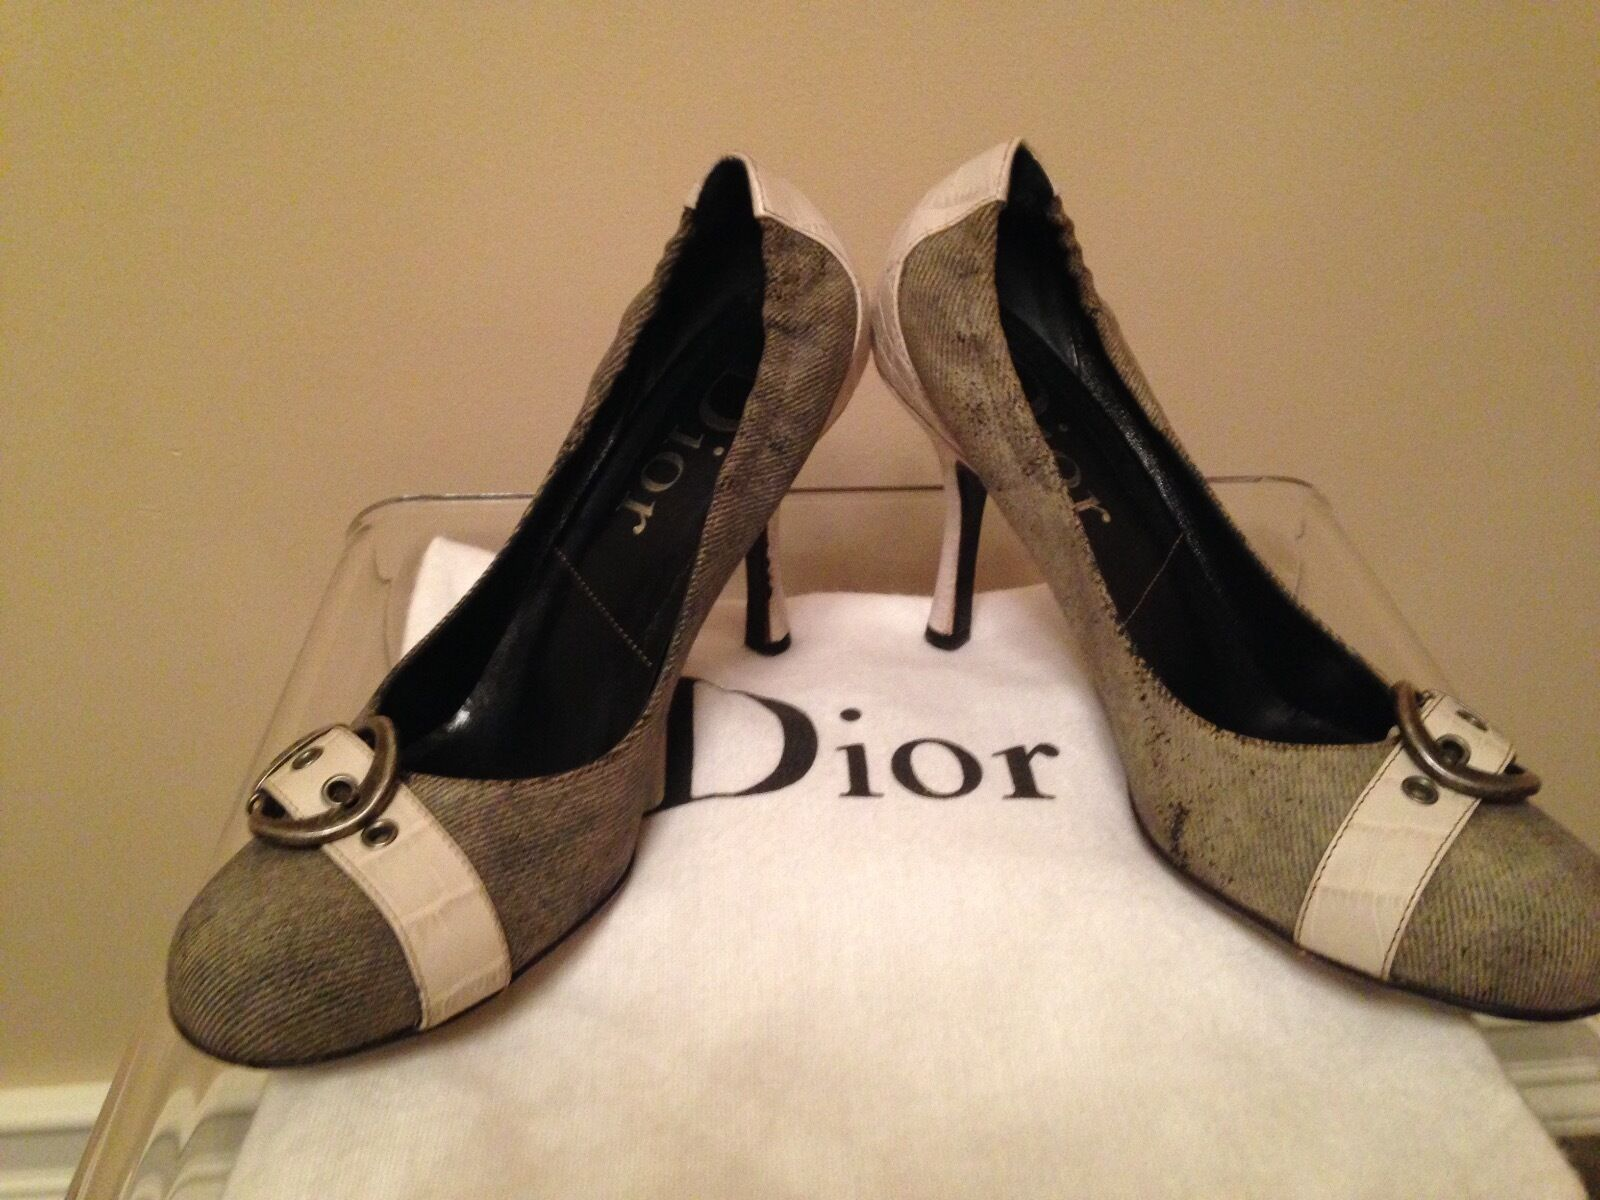 Dior designer pumps, denim and leather, Italian size 37 (run small) fits US 6